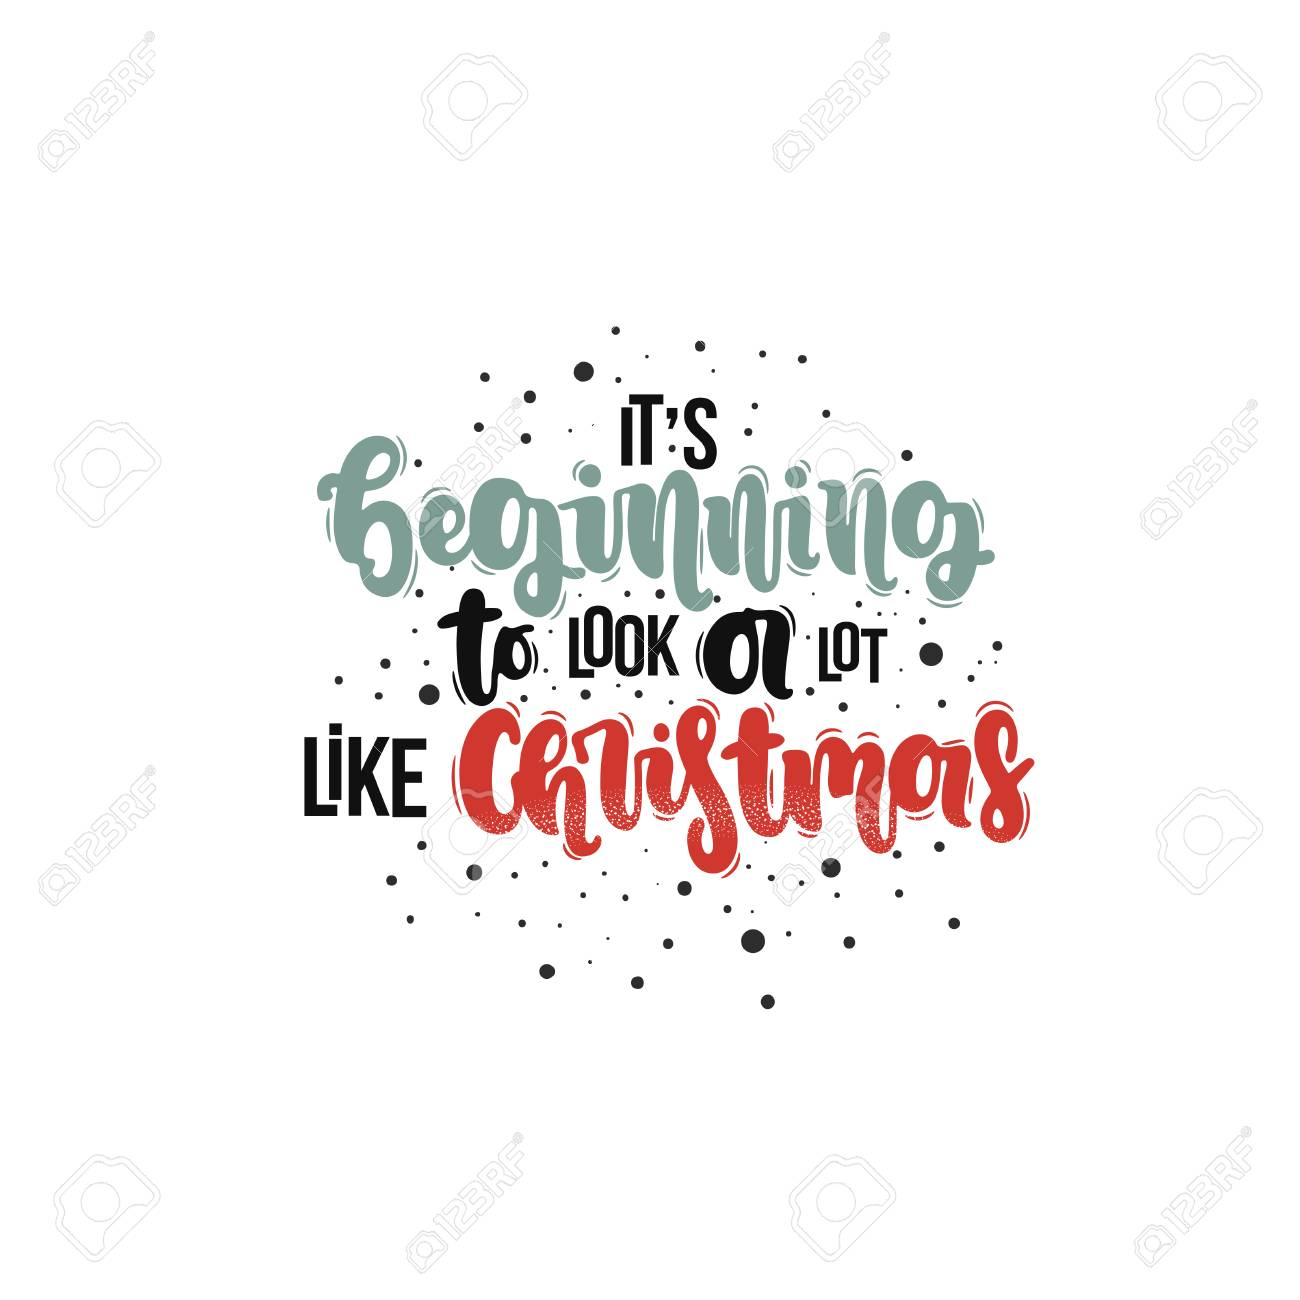 Its Beginning To Look Like Christmas.Vector Hand Drawn Illustration Lettering Phrases It S Beginning